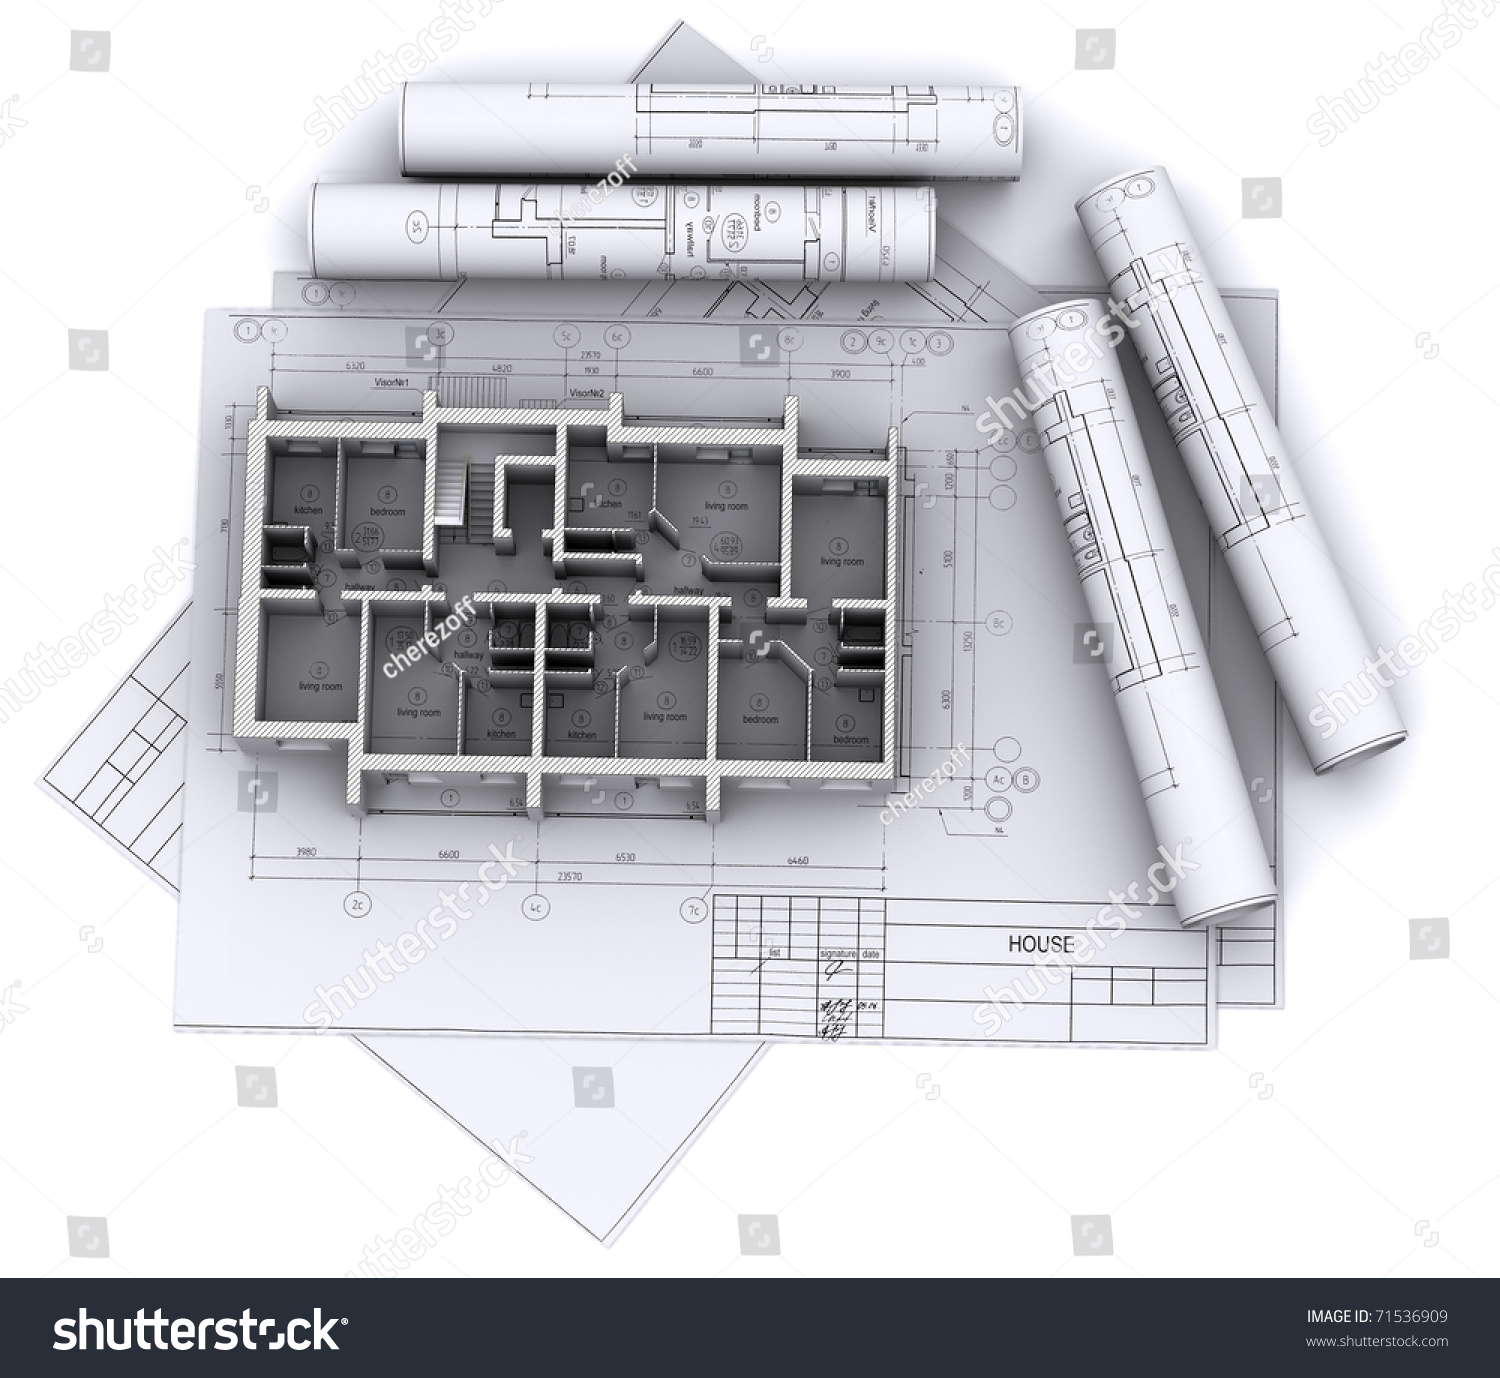 Wall Schematic Engineering Diagram Built Walls House On Construction Drawings Stock Photo Edit Now Of A